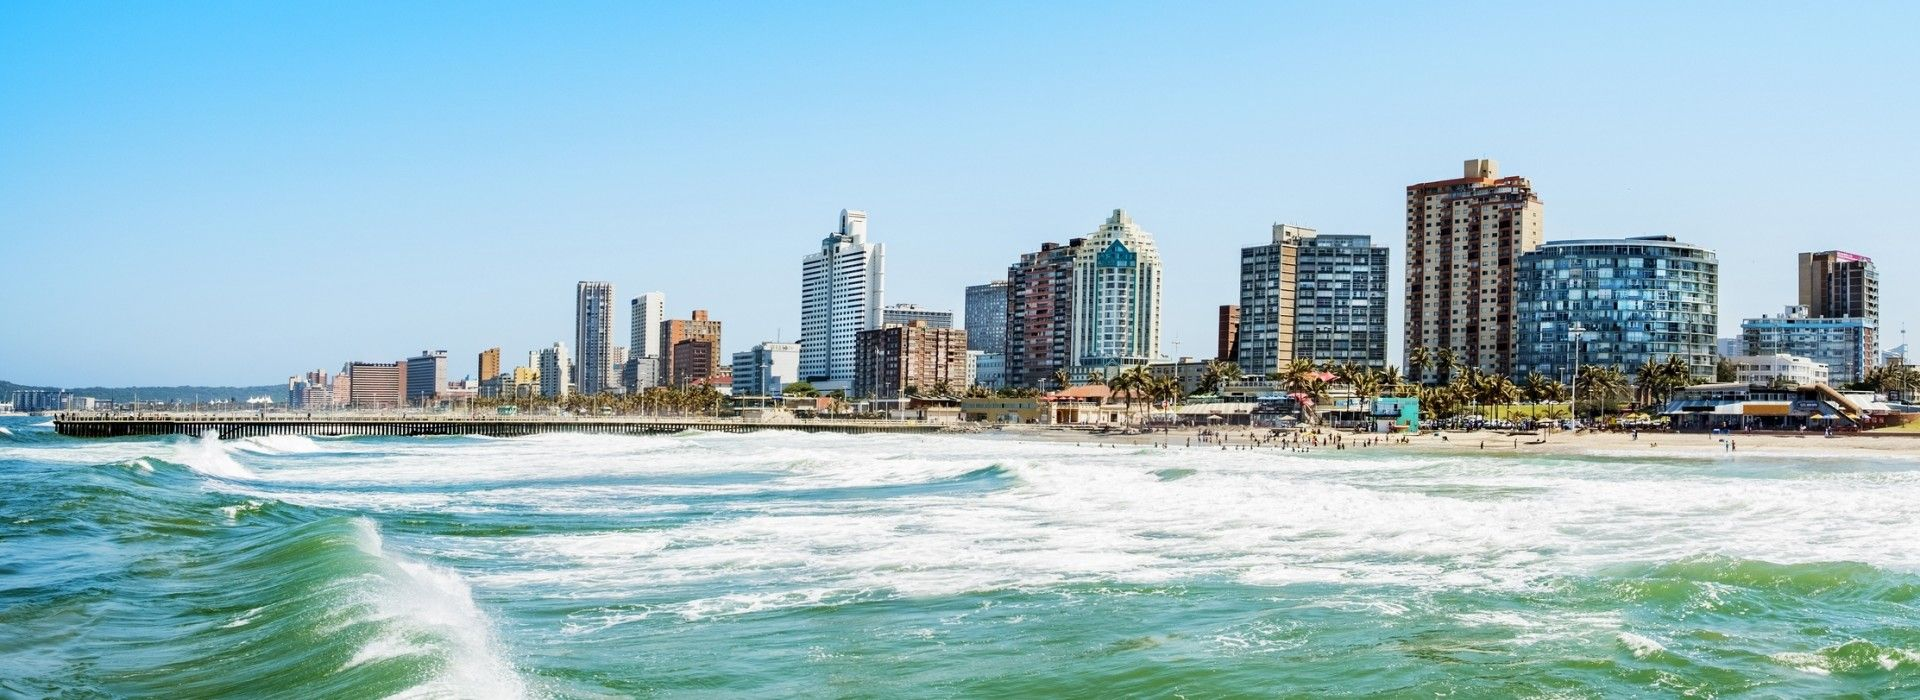 Durban Tours and Holidays 2019/2020